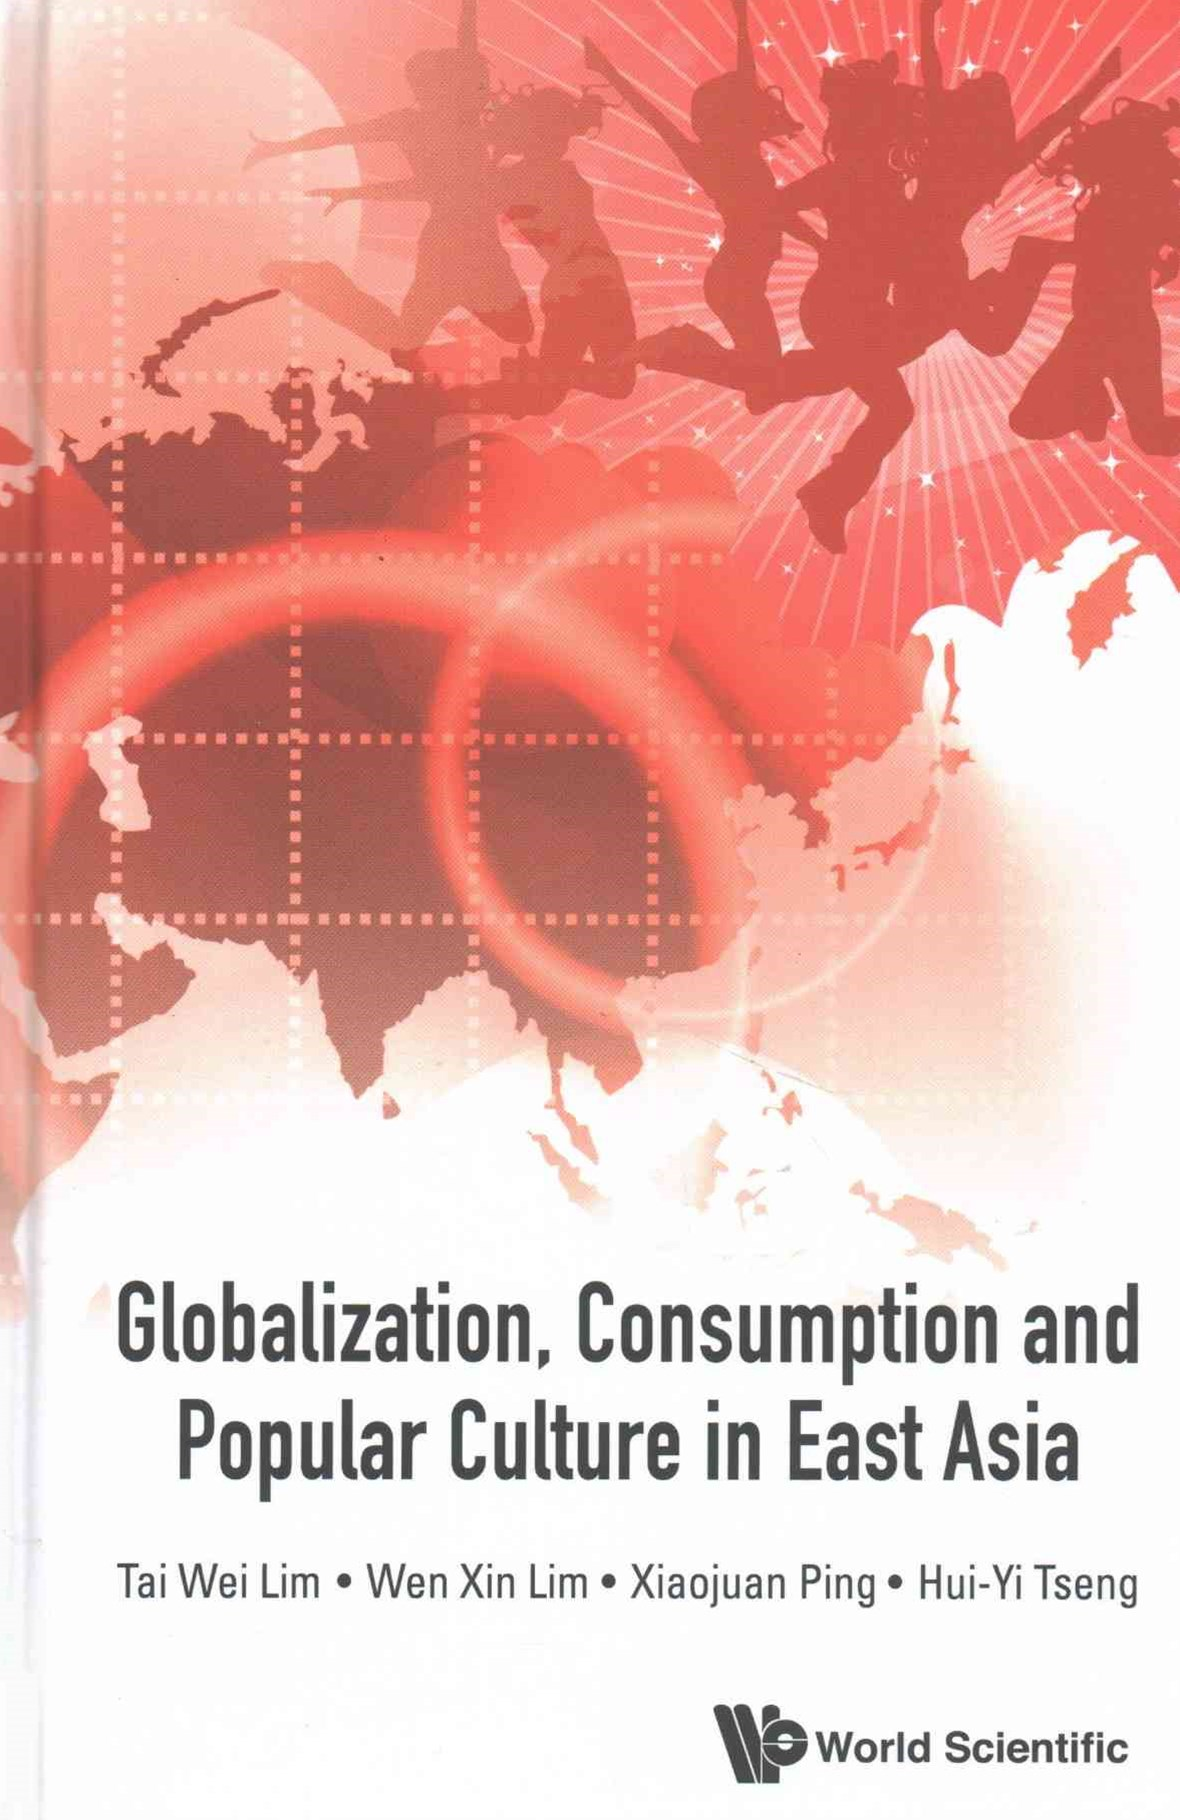 Globalization, Consumption and Popular Culture in East Asia